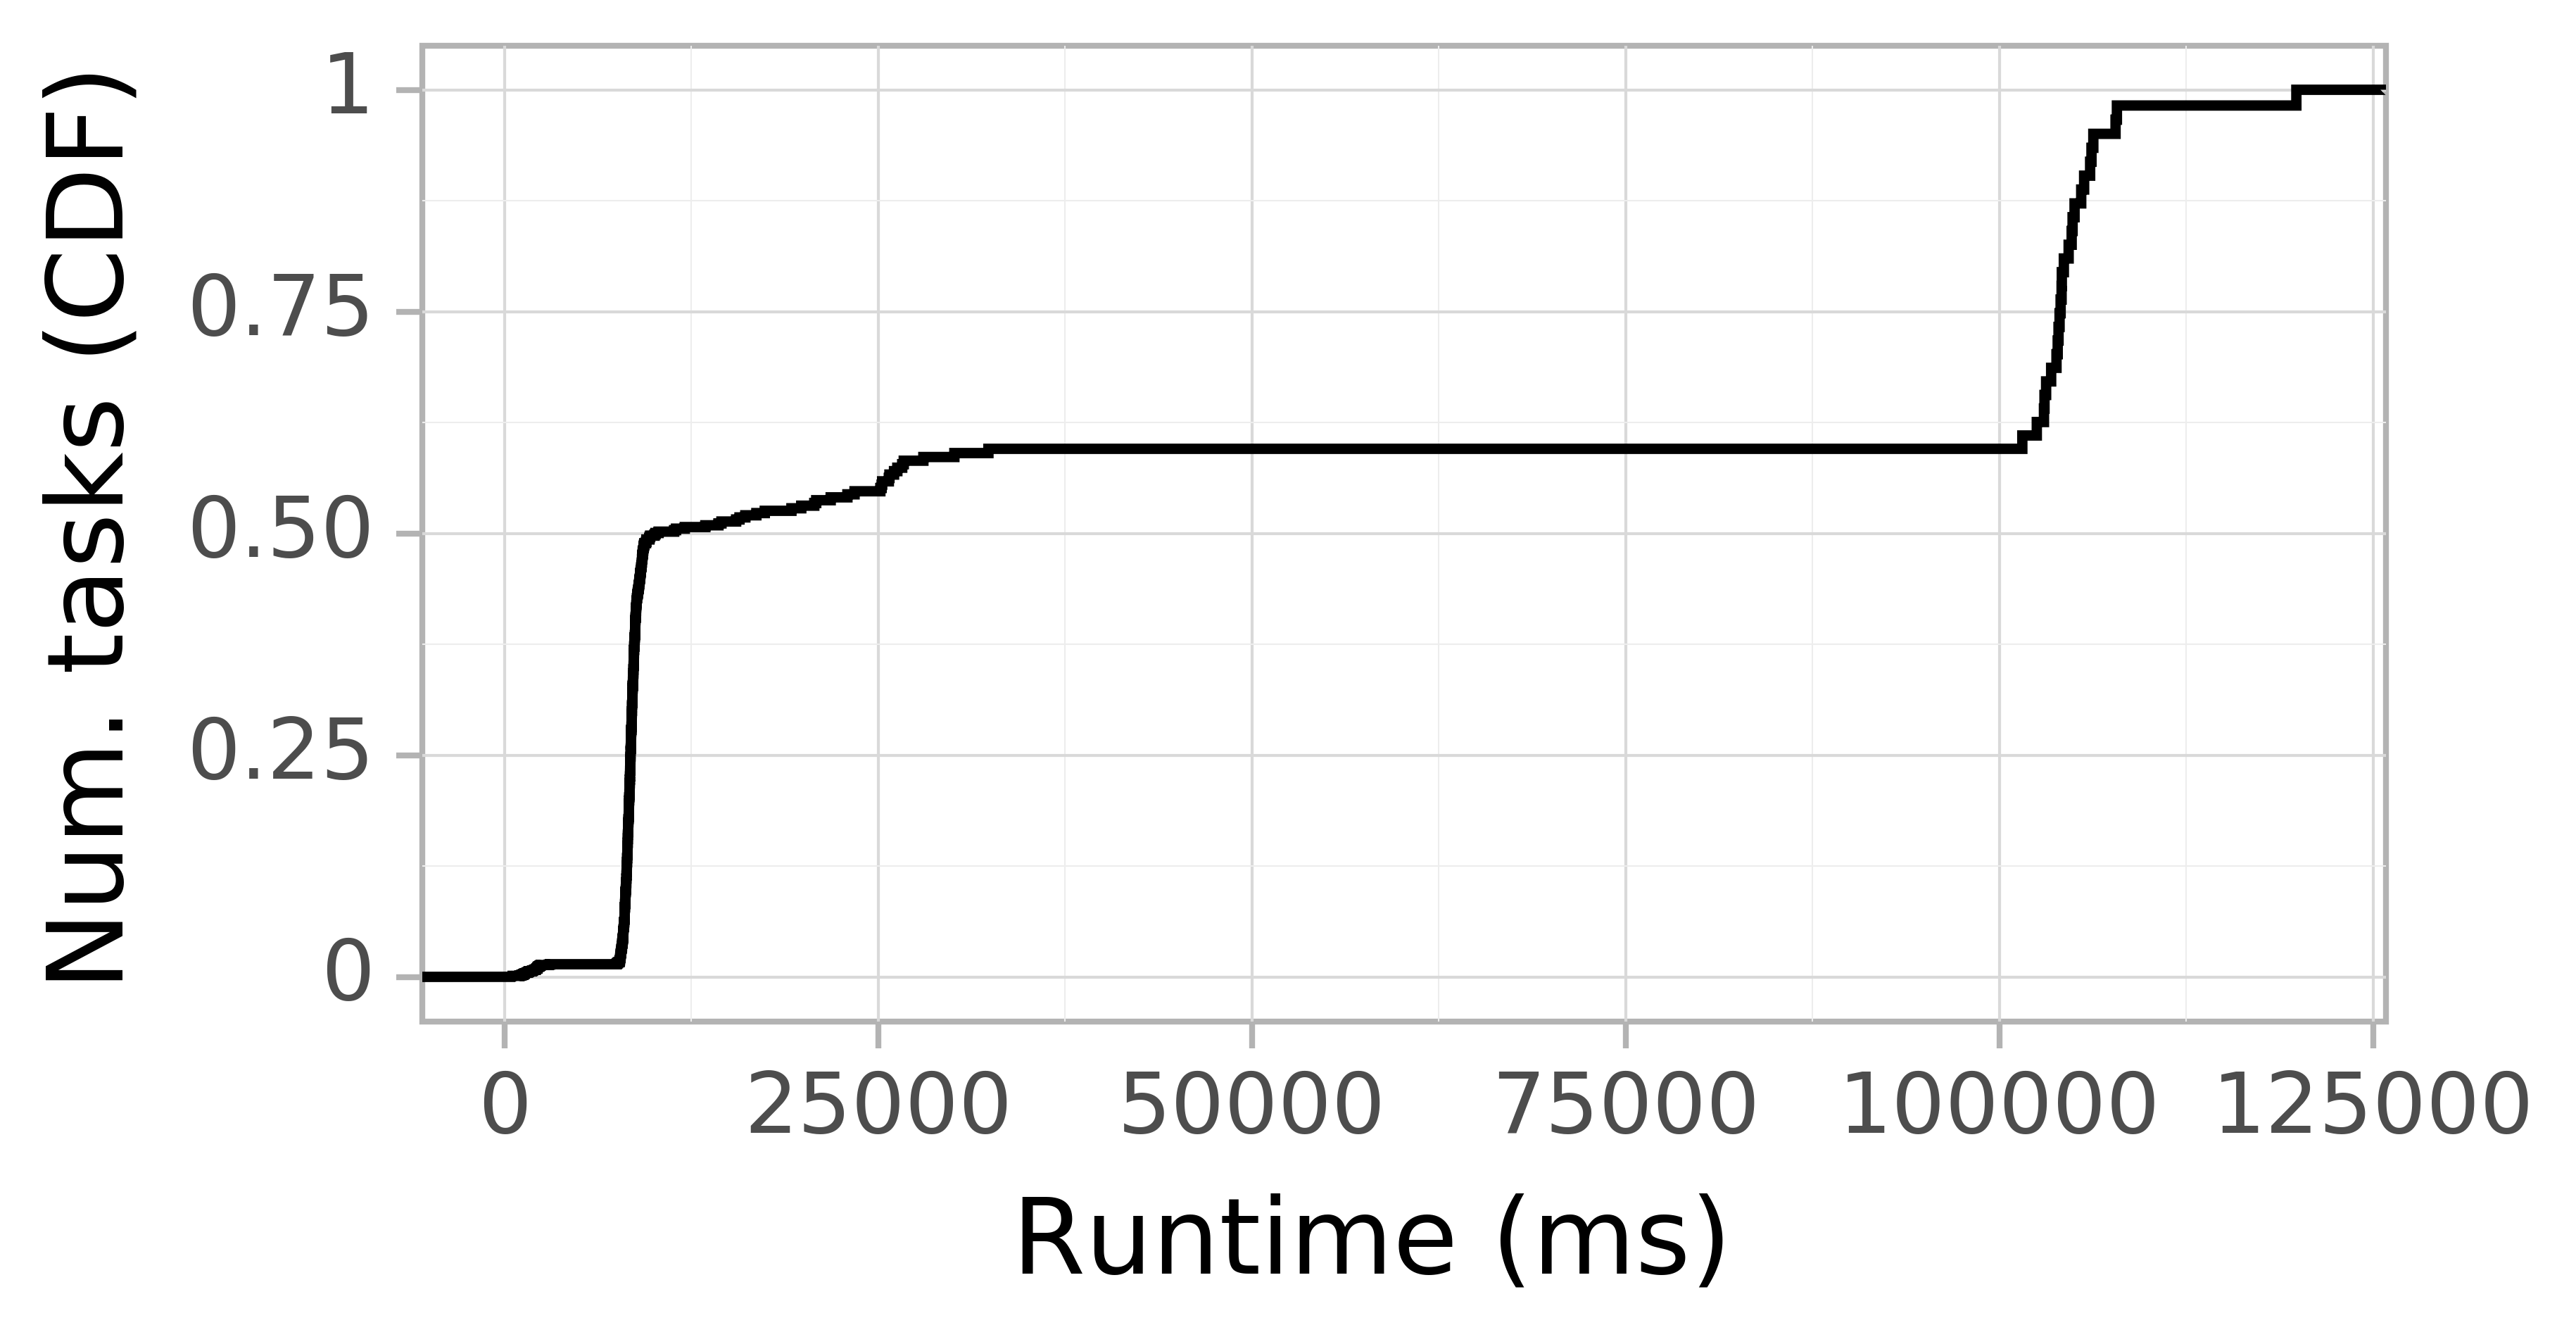 Task runtime CDF graph for the askalon-new_ee29 trace.